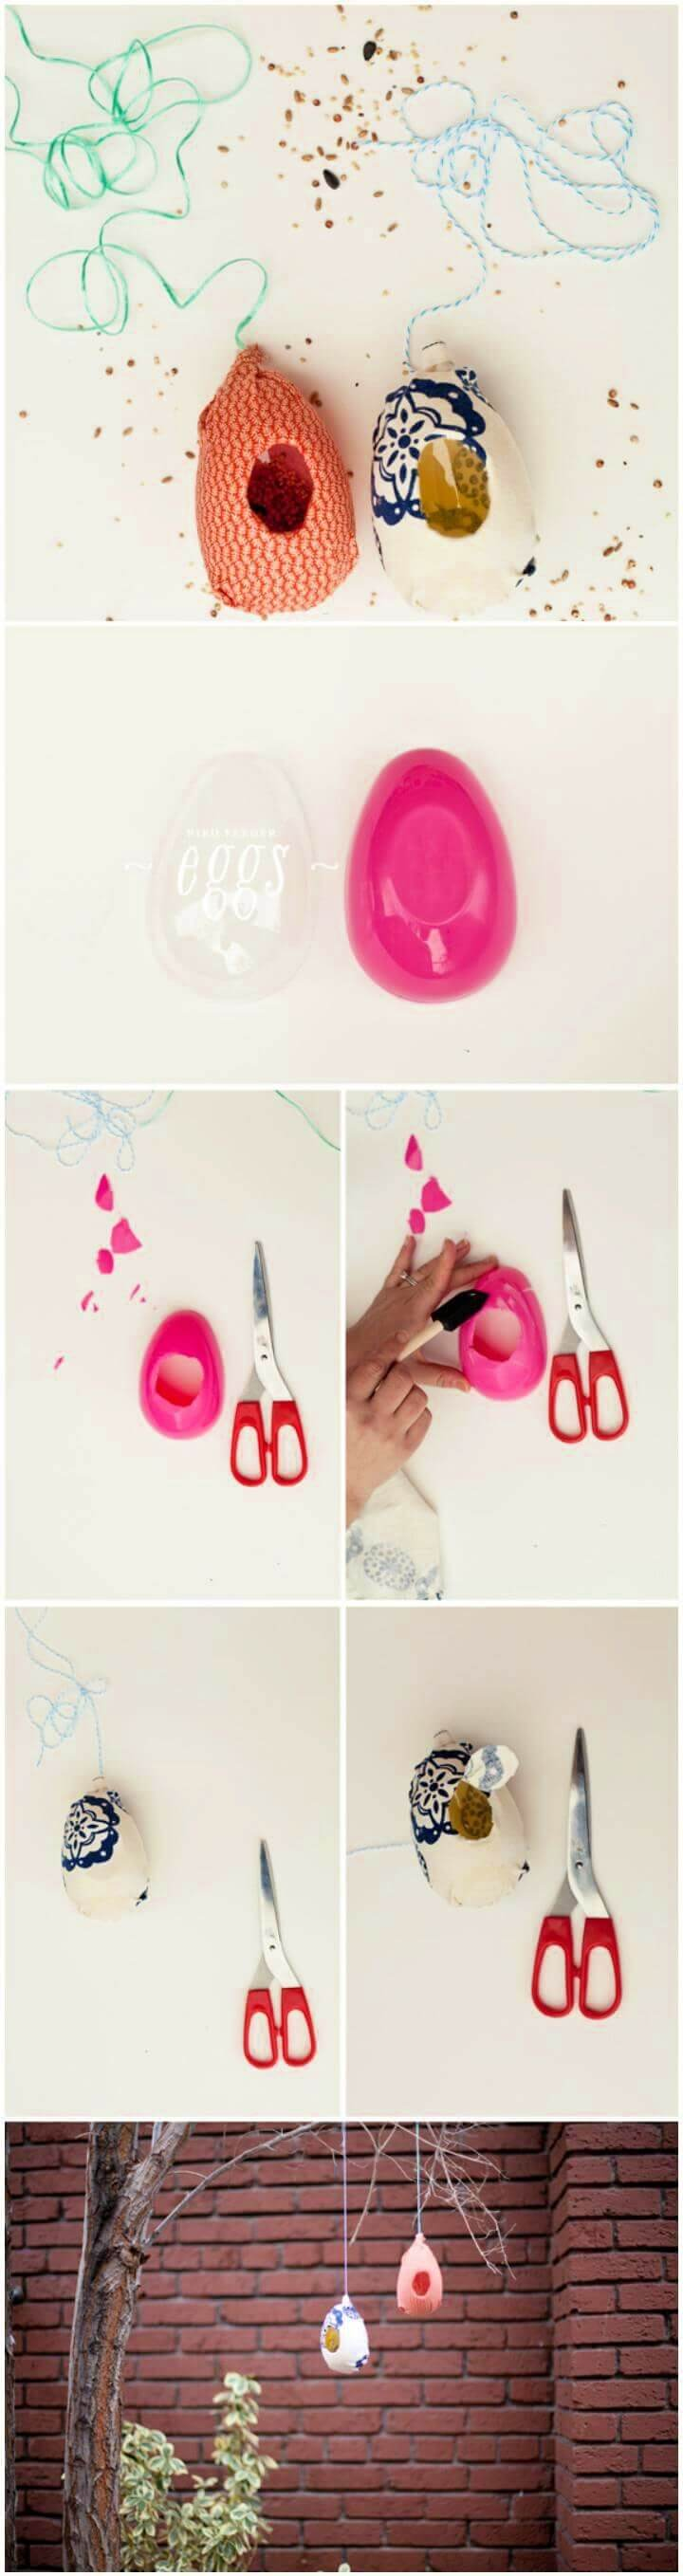 DIY Creative Plastic Egg Bird Feeder